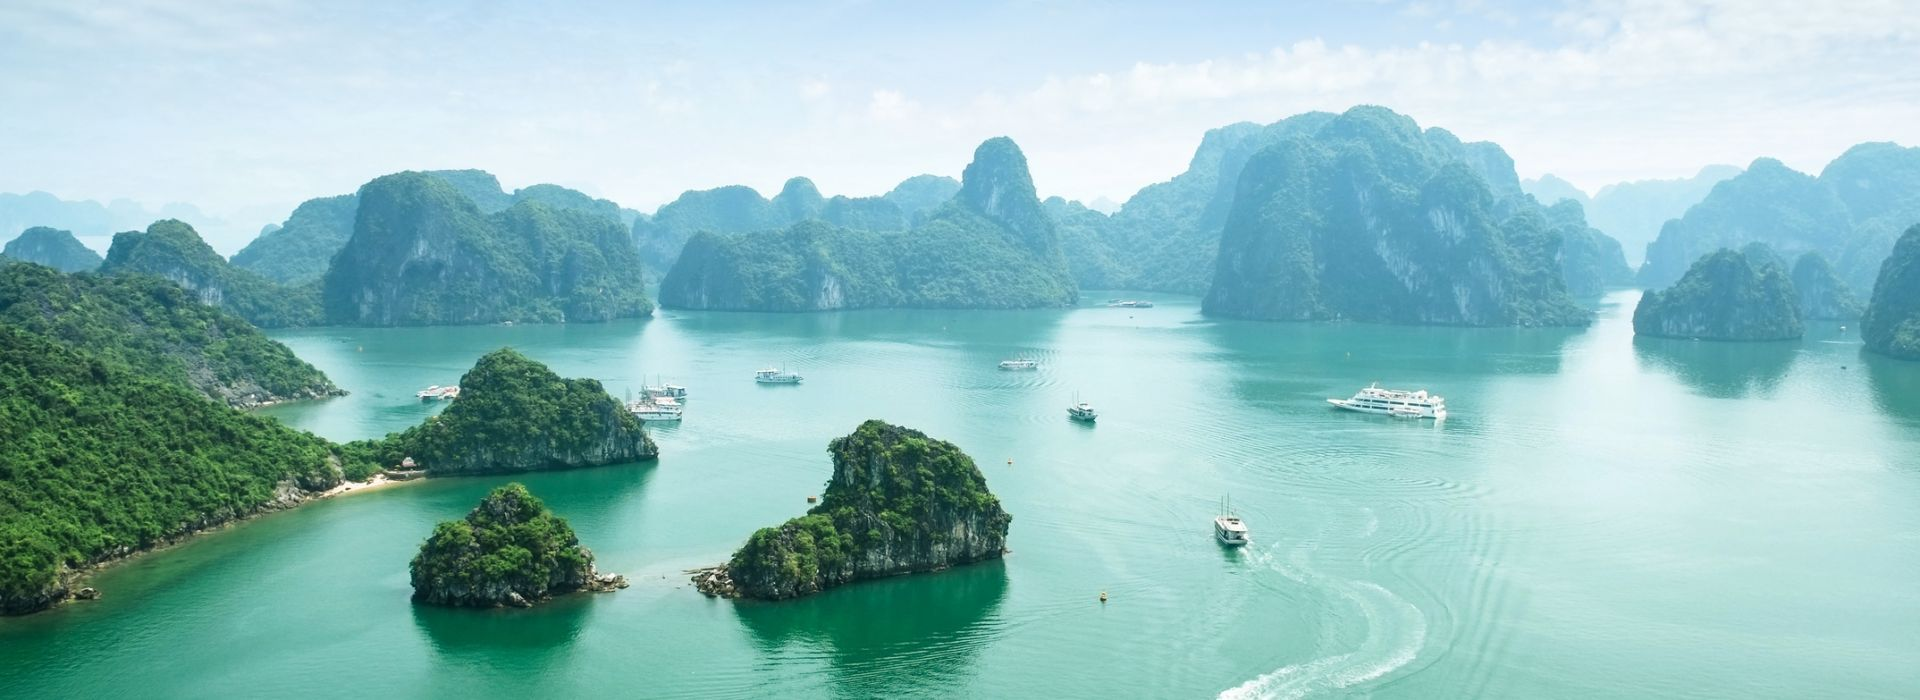 Cruise Tours in Halong Bay